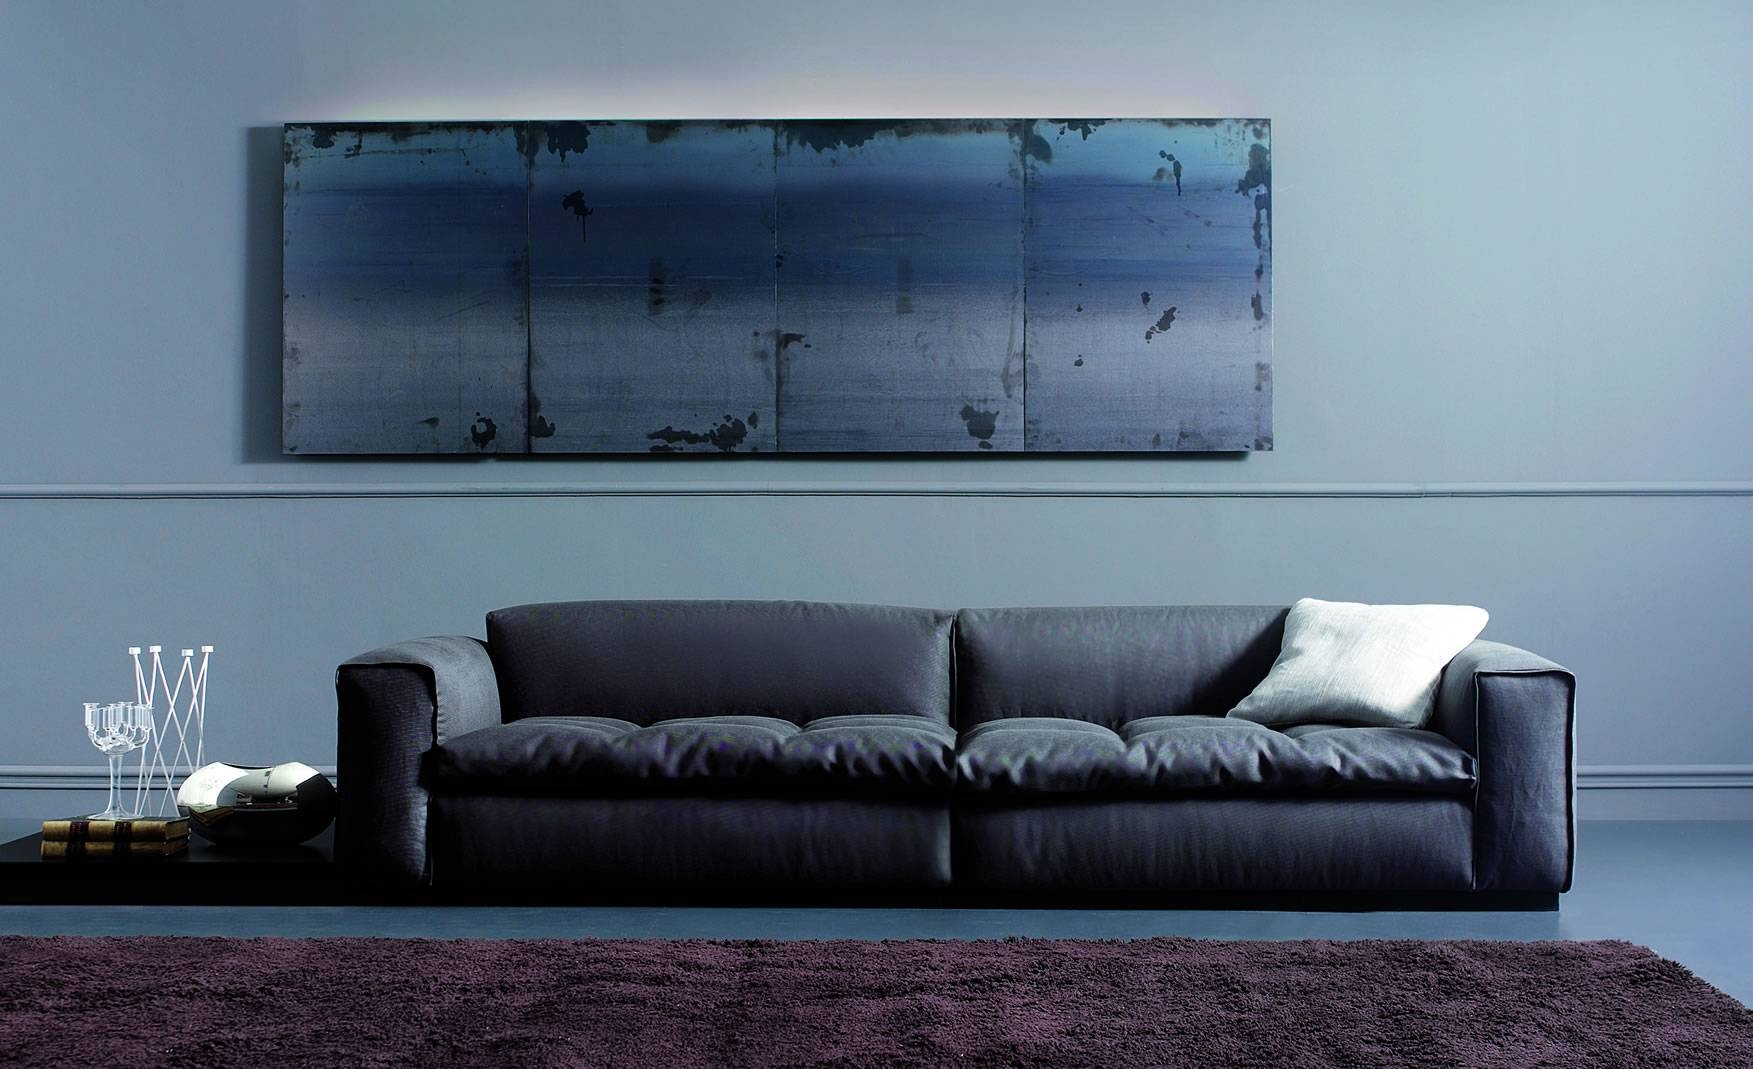 Cantoni Sofa 65 With Cantoni Sofa | Jinanhongyu pertaining to Cantoni Sofas (Image 3 of 15)